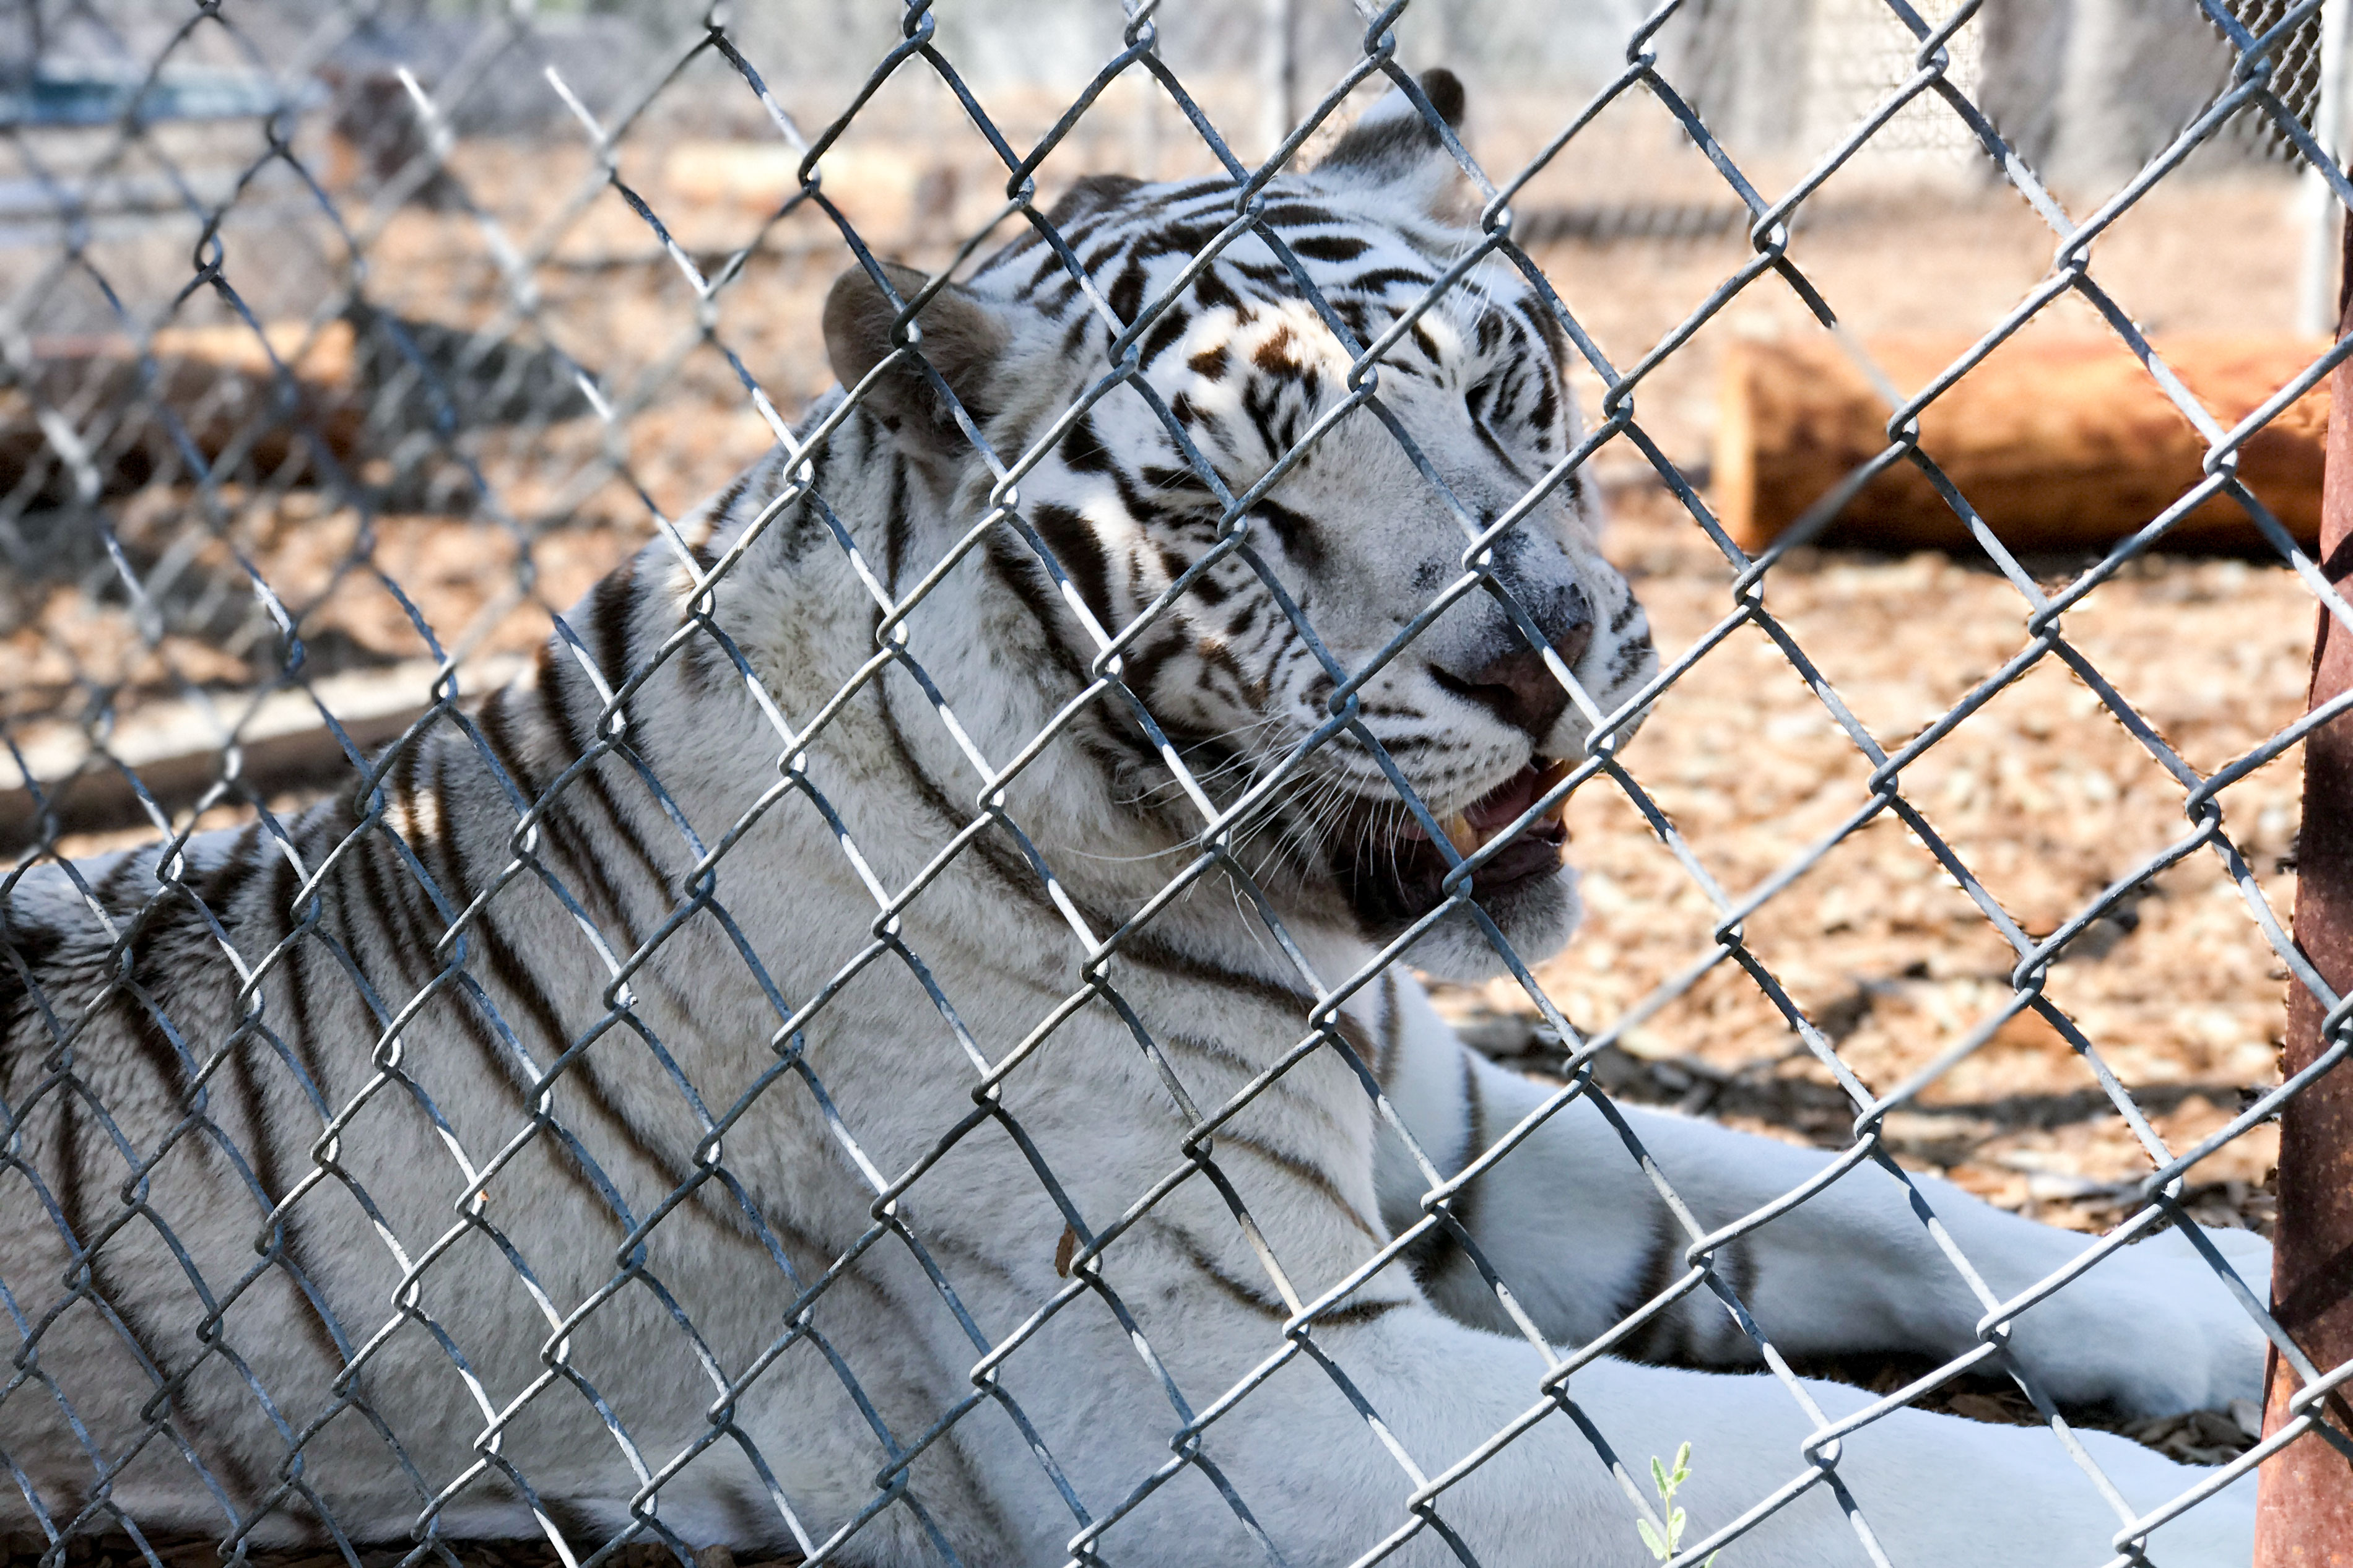 Photo: Keenesburg Sanctuary 1 | Tiger - MSakas